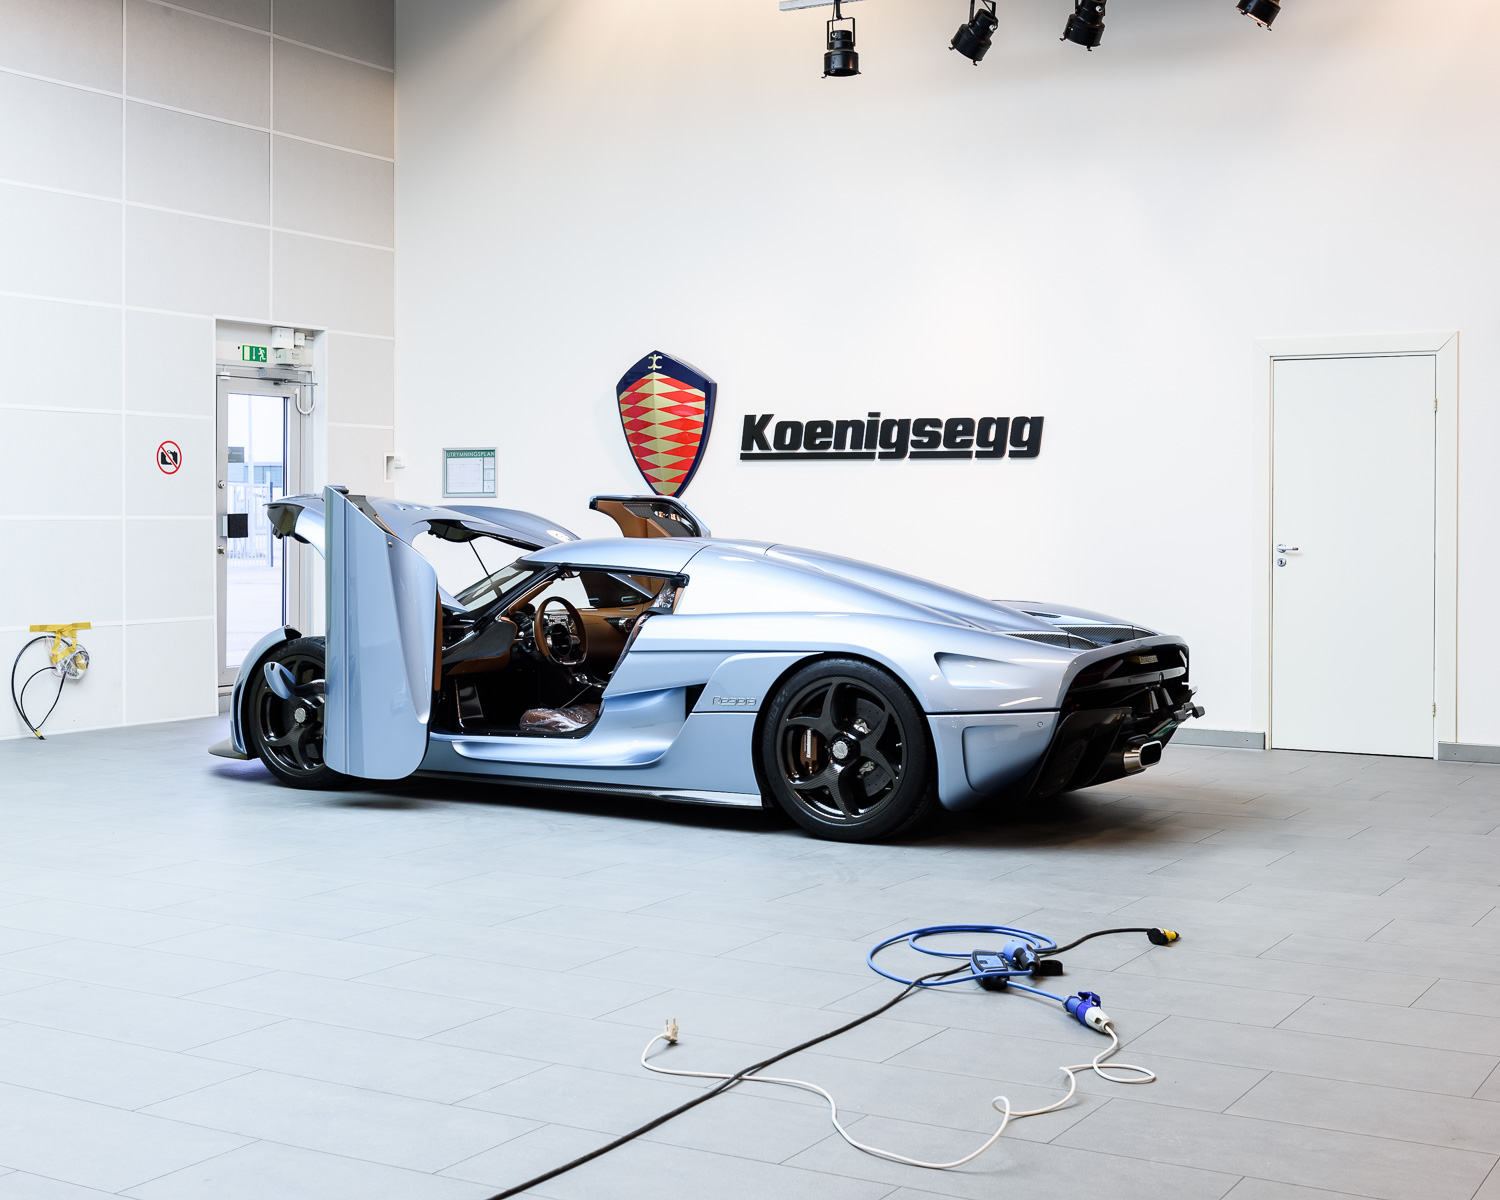 A Regera car ready to be tested.